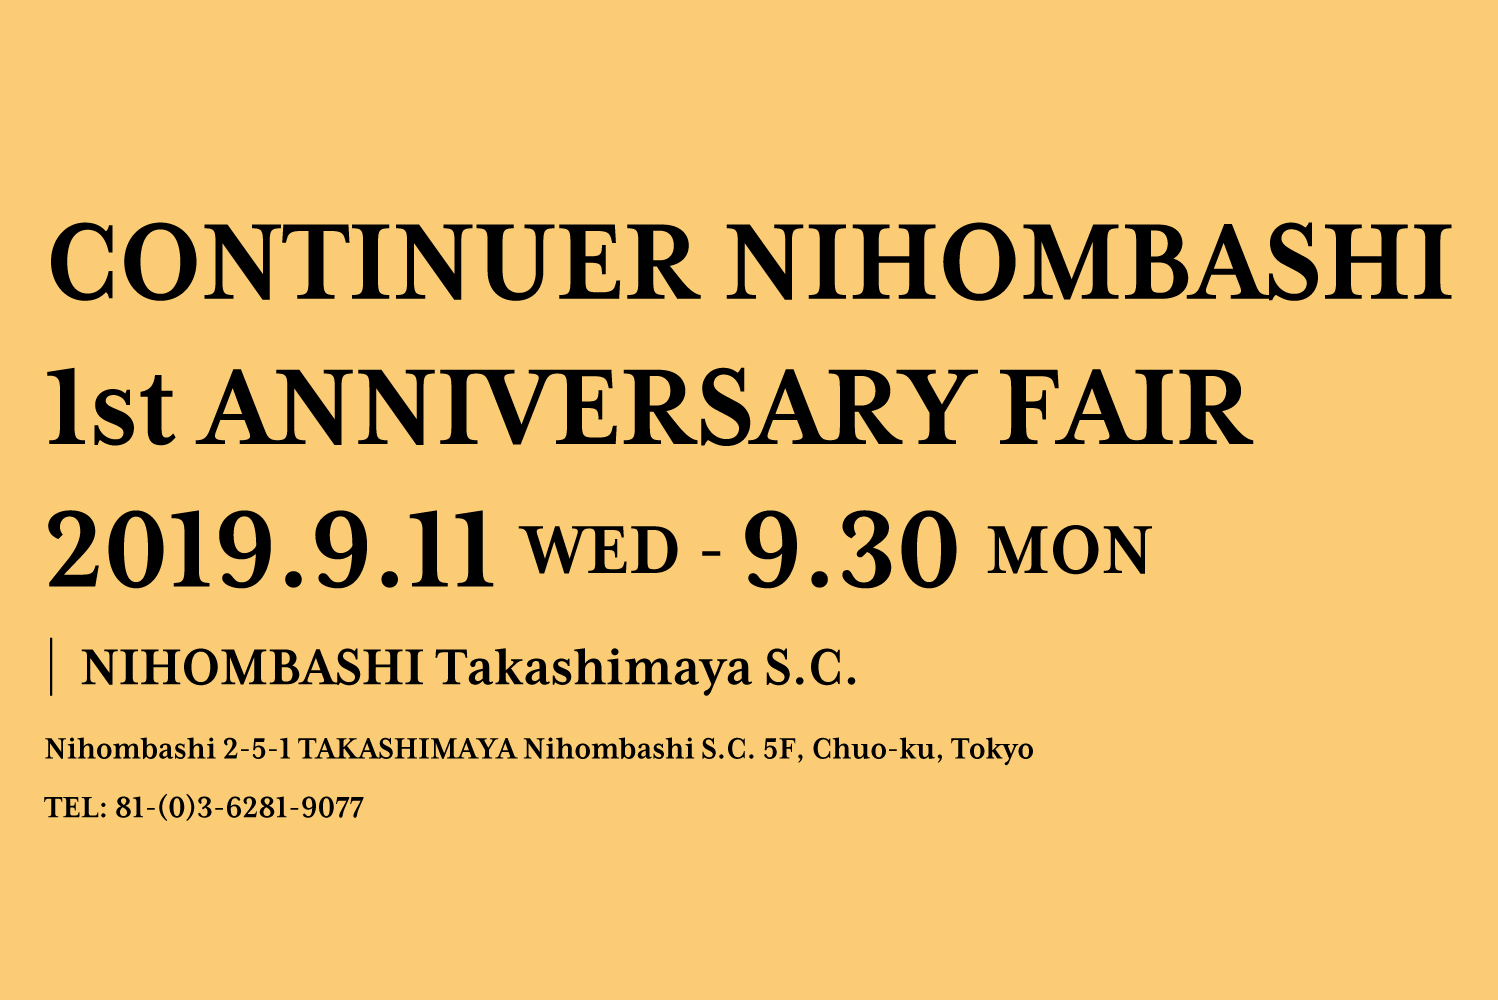 CONTINUER NIHOMBASHI 1st ANNIVERSARY